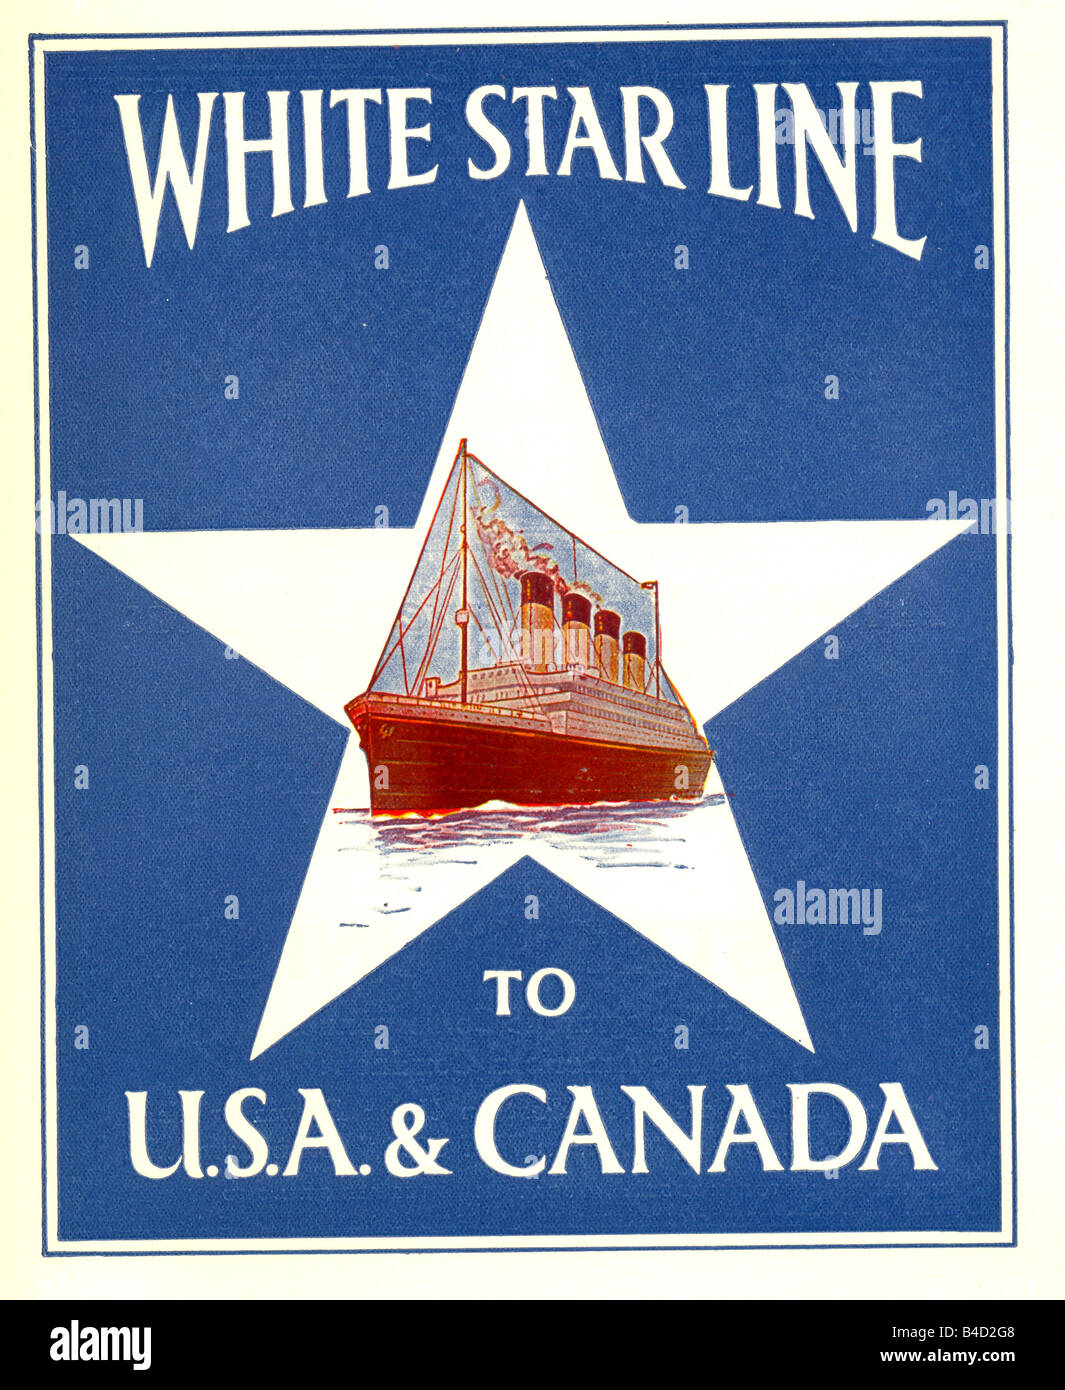 Advertisement for the White Star Line to USA and Canada circa 1935 - Stock Image